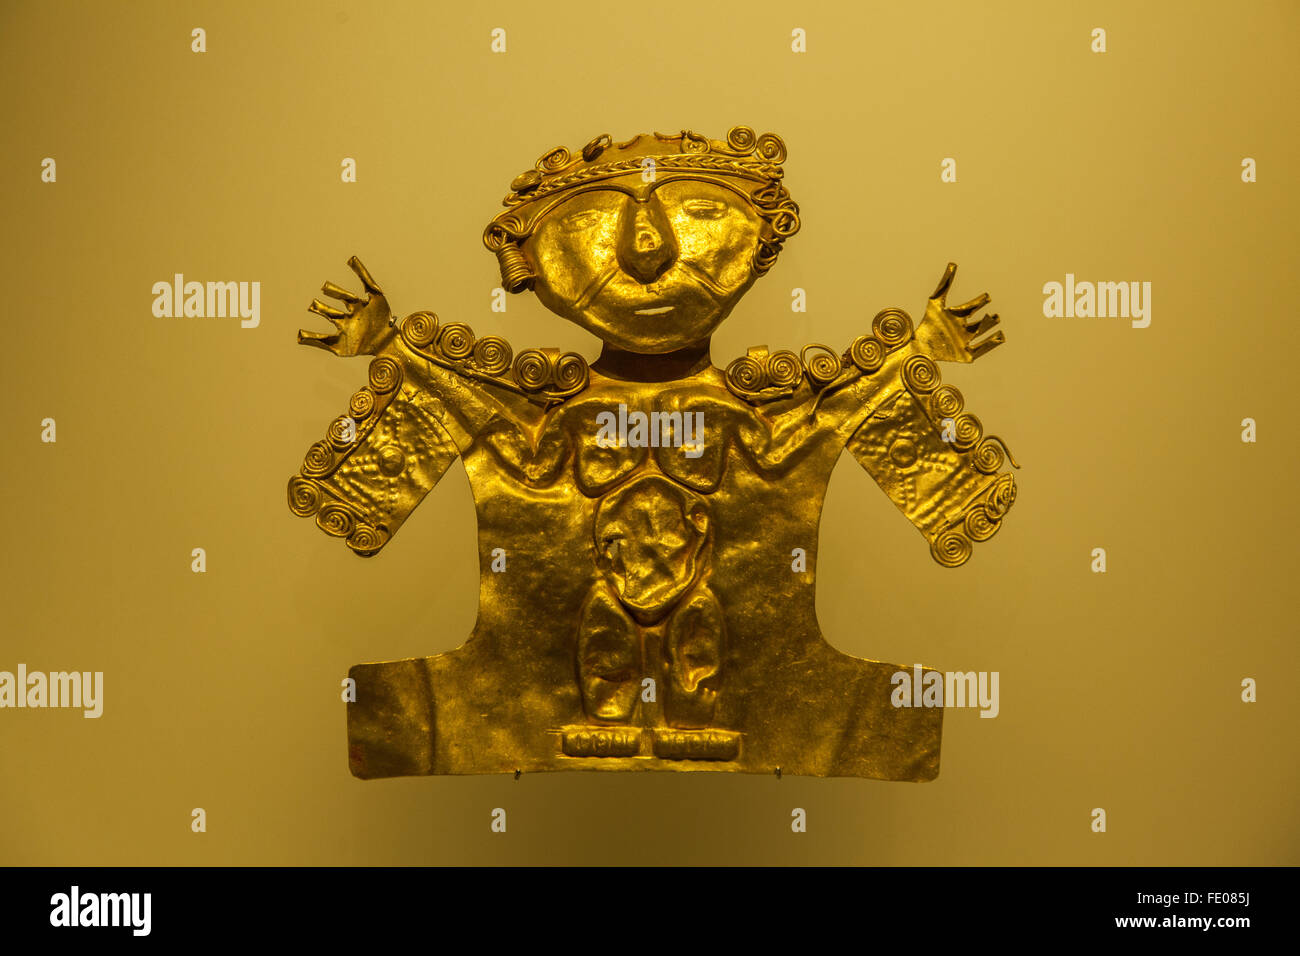 Items on display in the Gold Museum (El Museo del Oro) in Bogota, Colombia - Stock Image